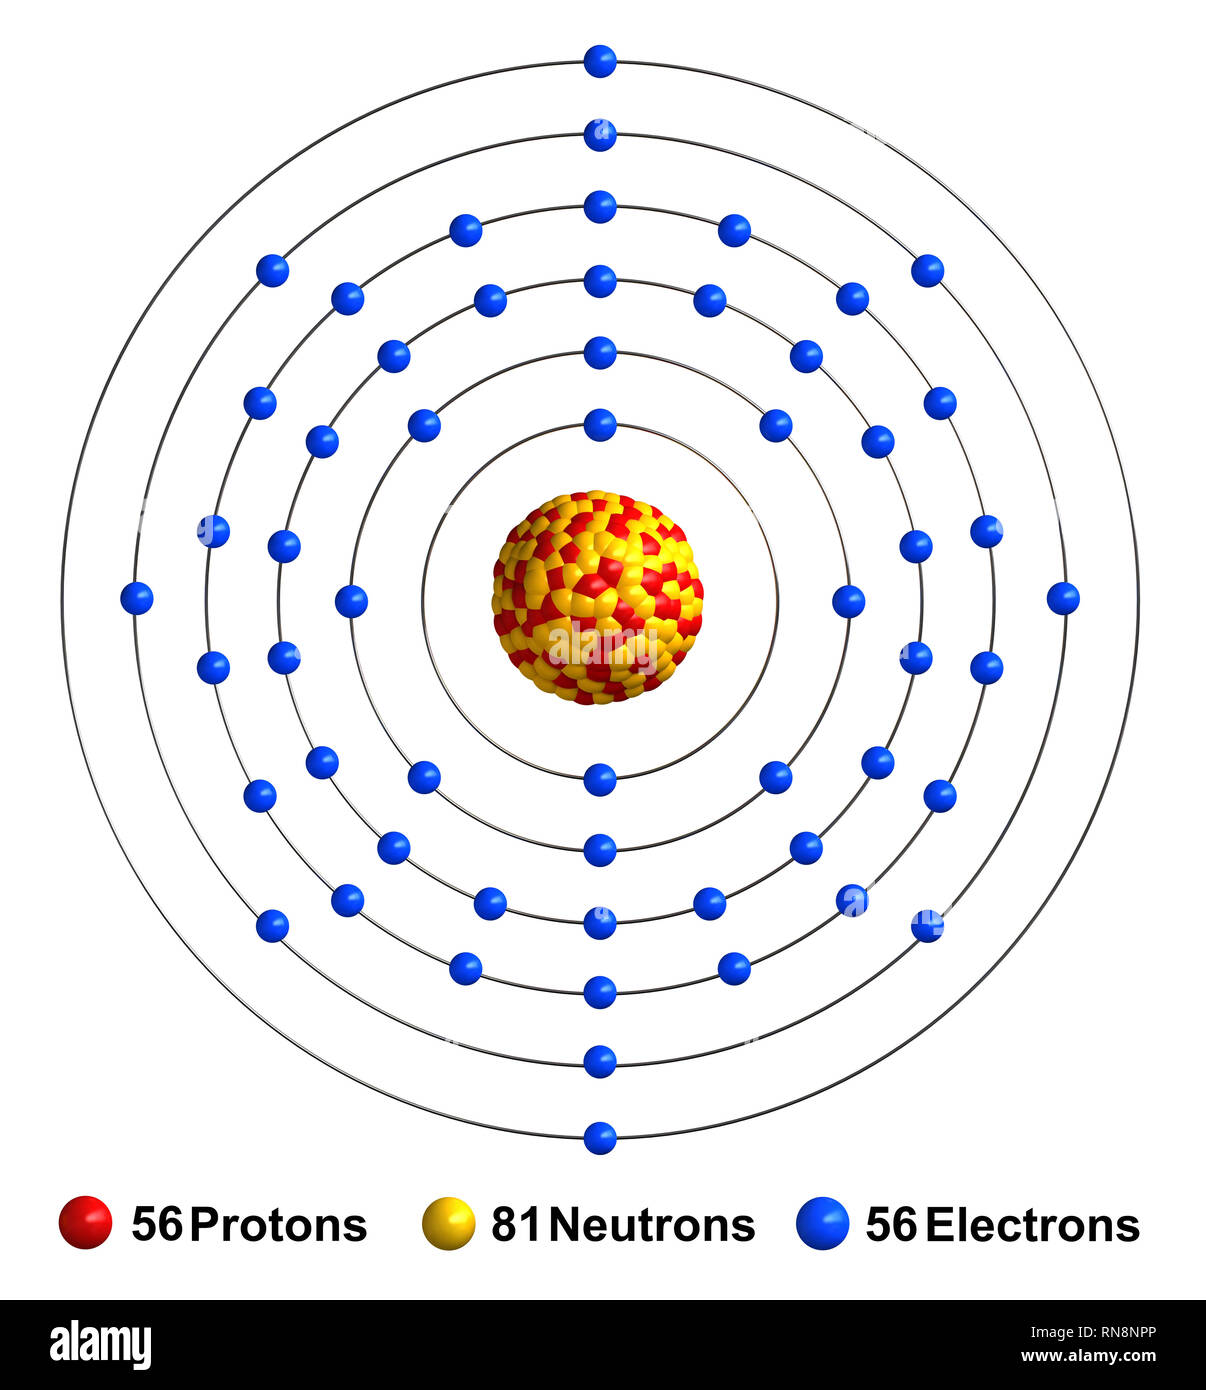 3d render of atom structure of barium isolated over white background Protons are represented as red spheres, neutron as yellow spheres, electrons as b - Stock Image